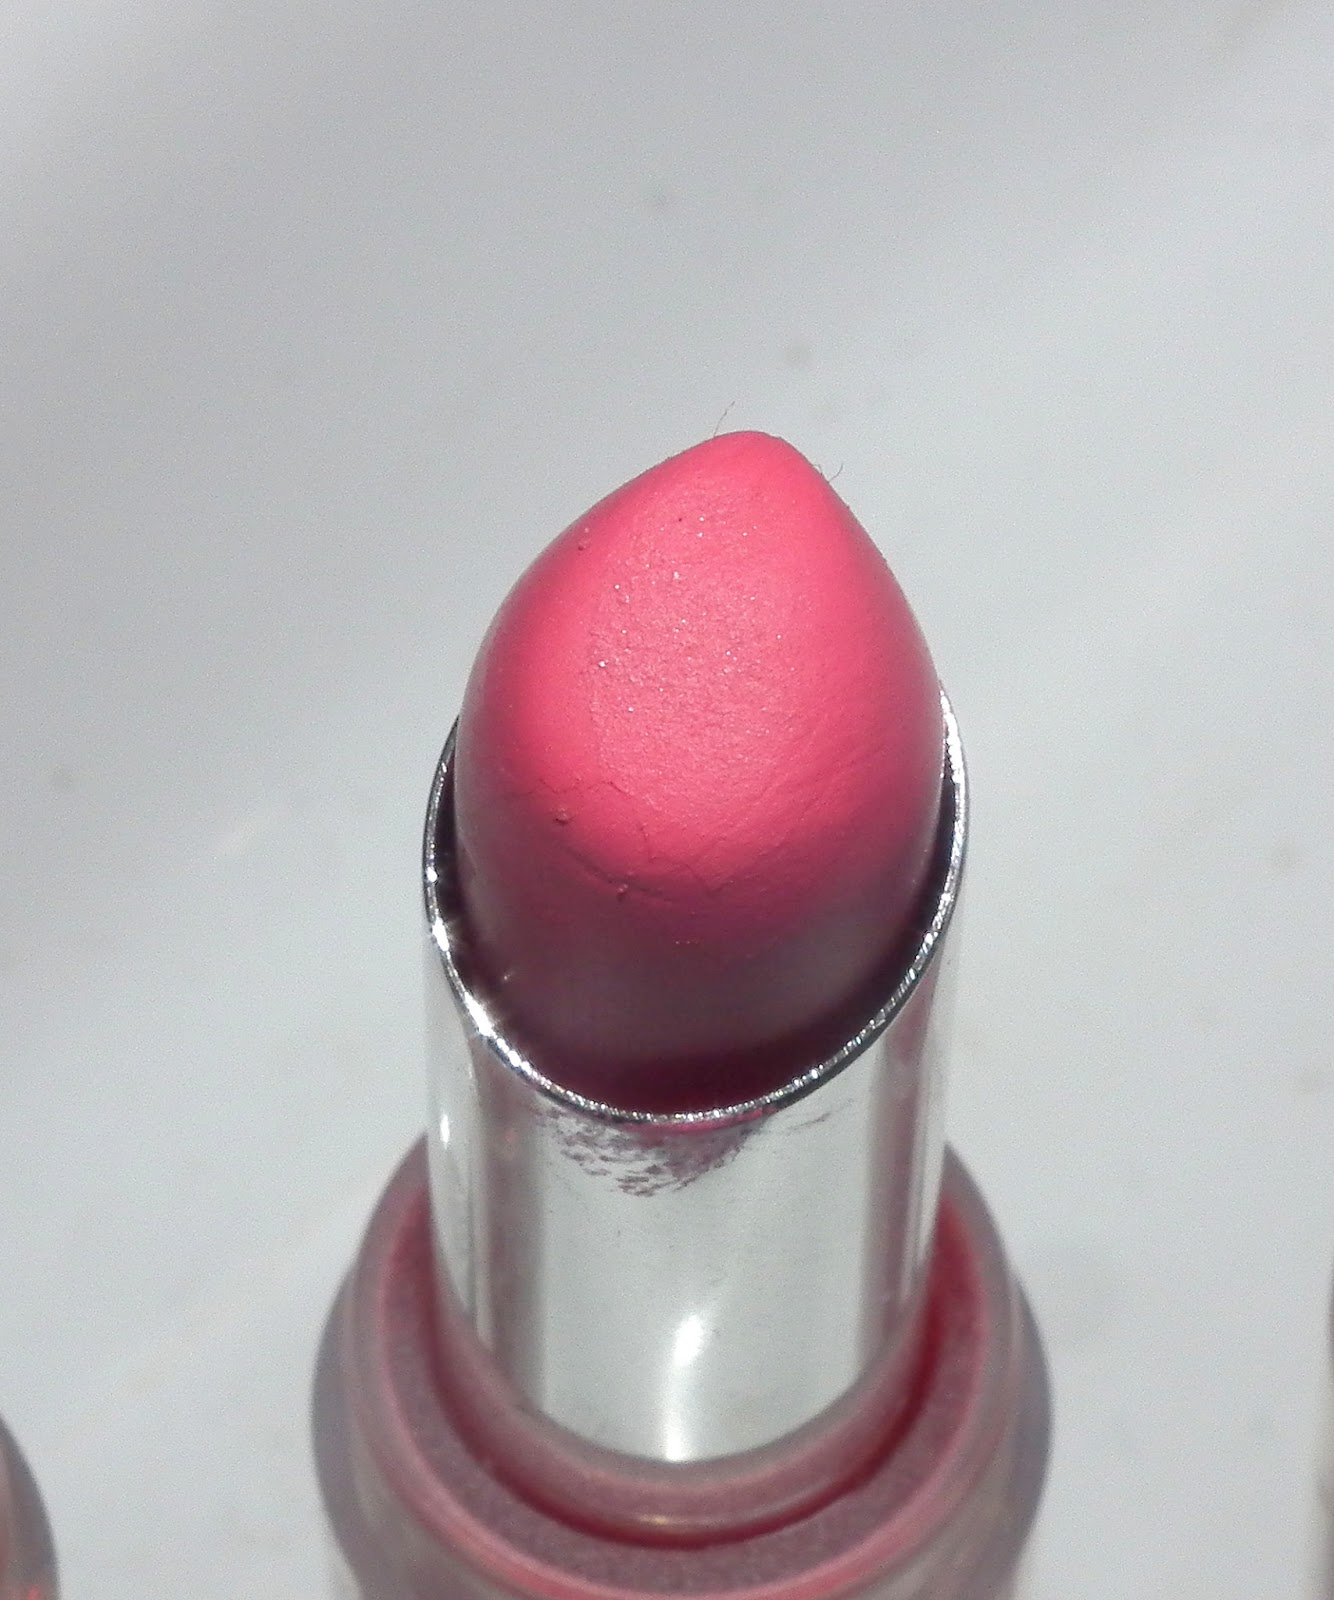 Maybelline Superstay 14 Hr Lipstick in Eternal Rose 999a3321de95f